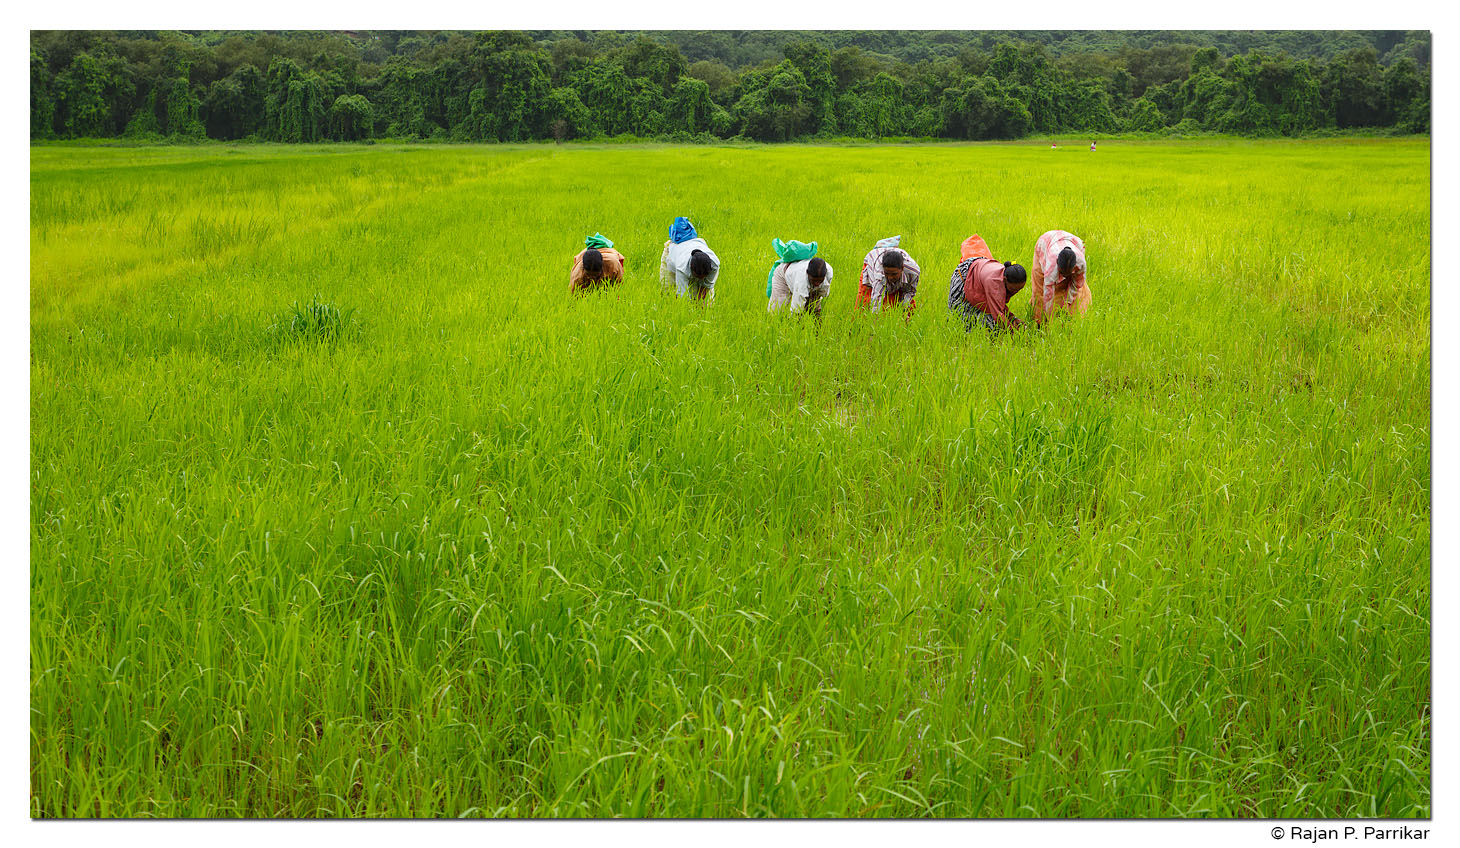 Paddy field workers, Bodiem, Goa